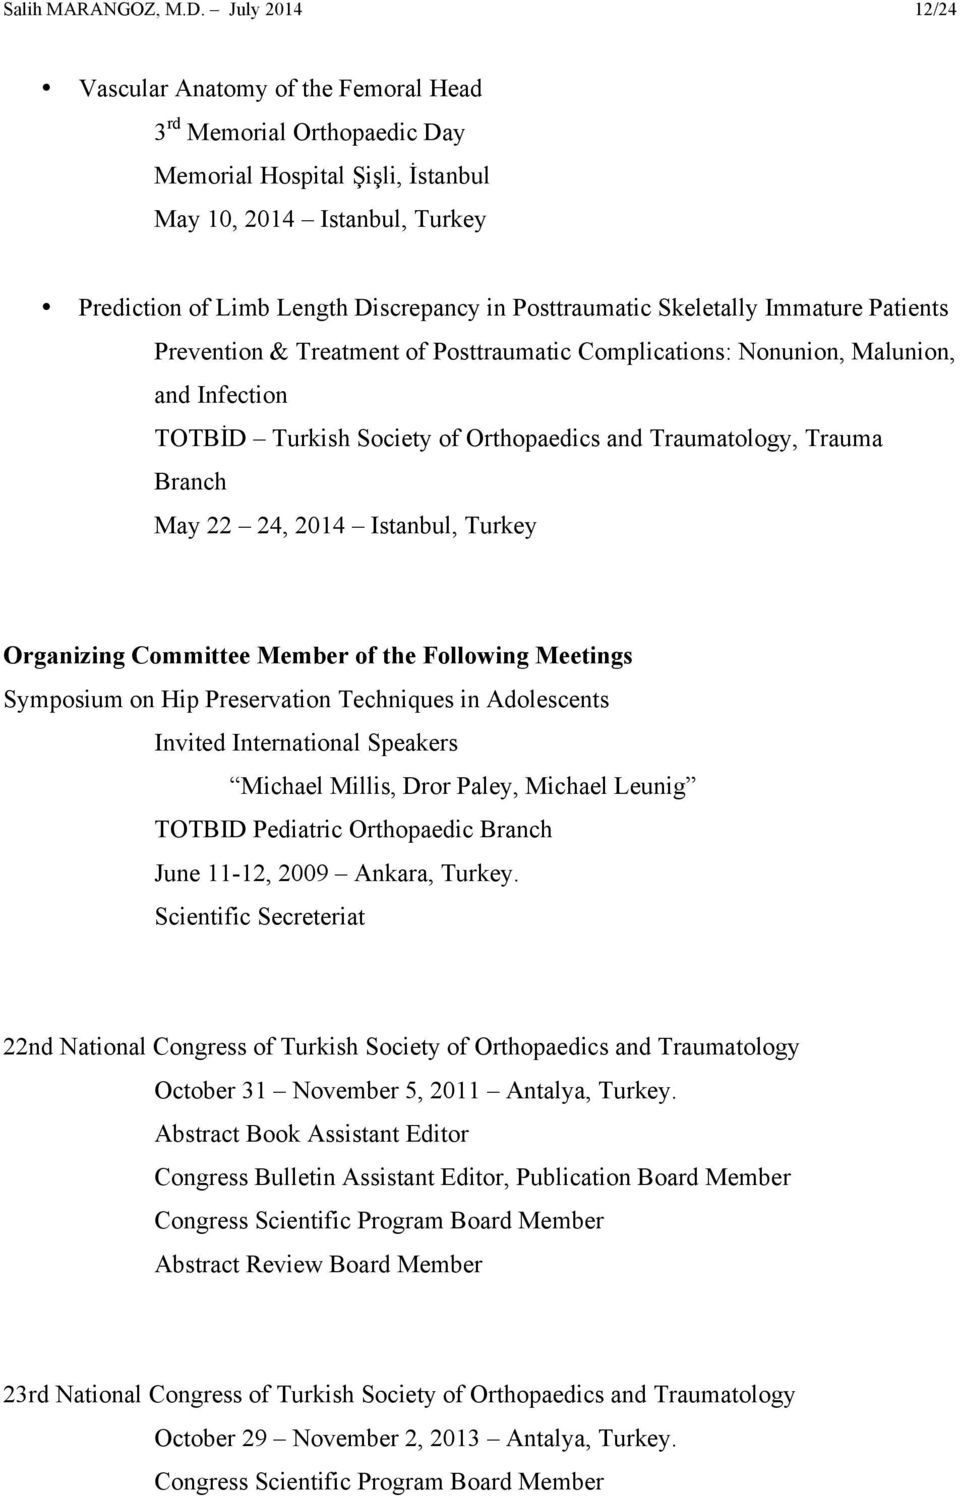 Posttraumatic Skeletally Immature Patients Prevention & Treatment of Posttraumatic Complications: Nonunion, Malunion, and Infection TOTBİD Turkish Society of Orthopaedics and Traumatology, Trauma